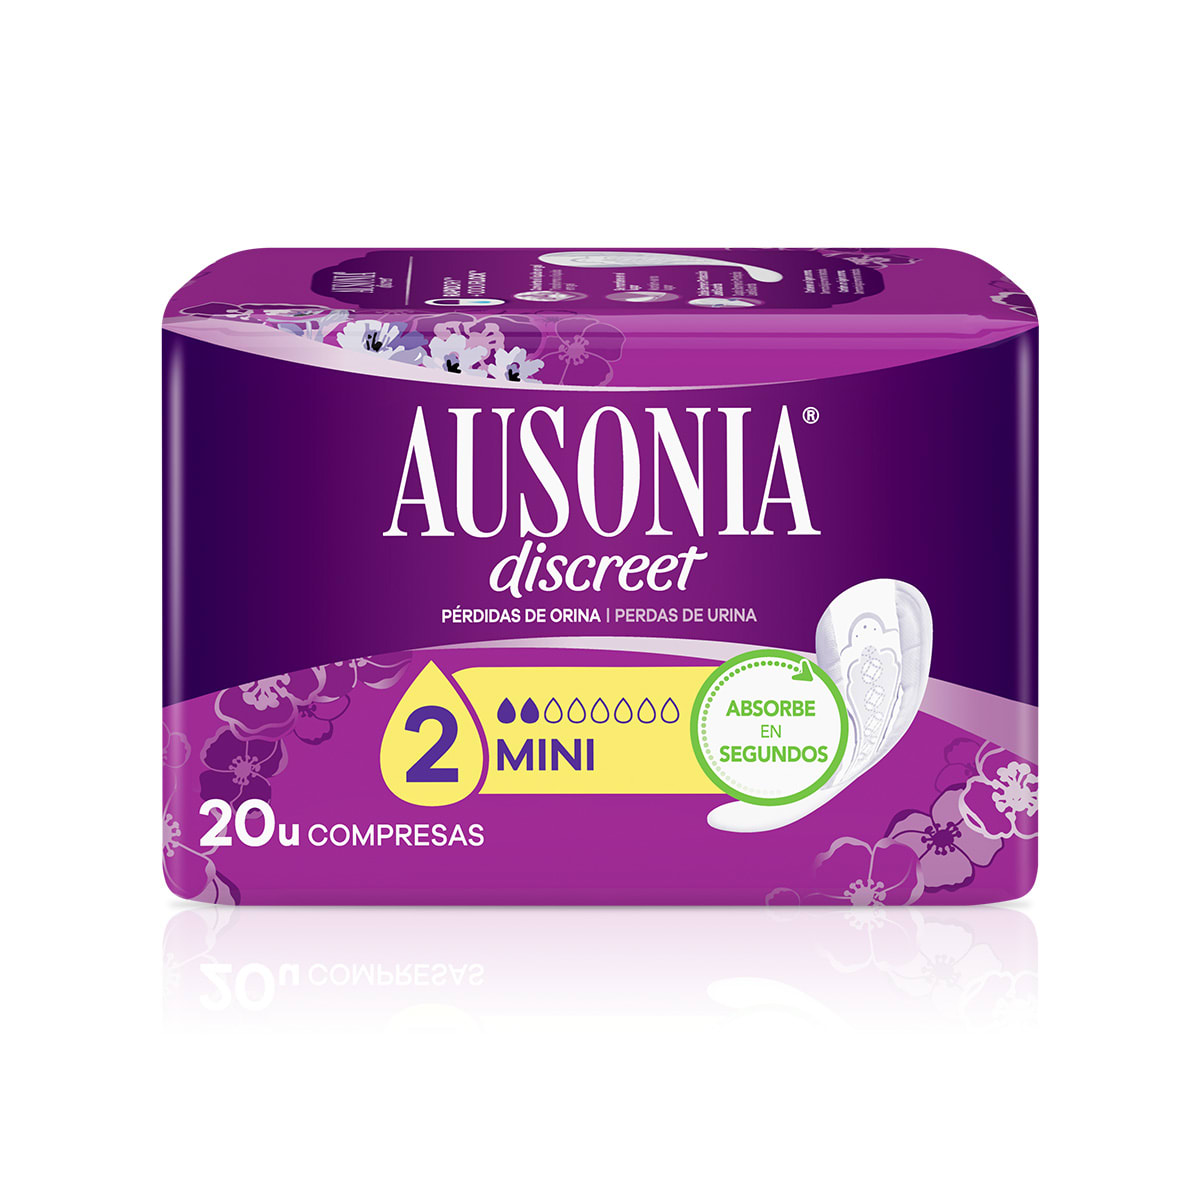 Ausonia Discreet Mini Pads